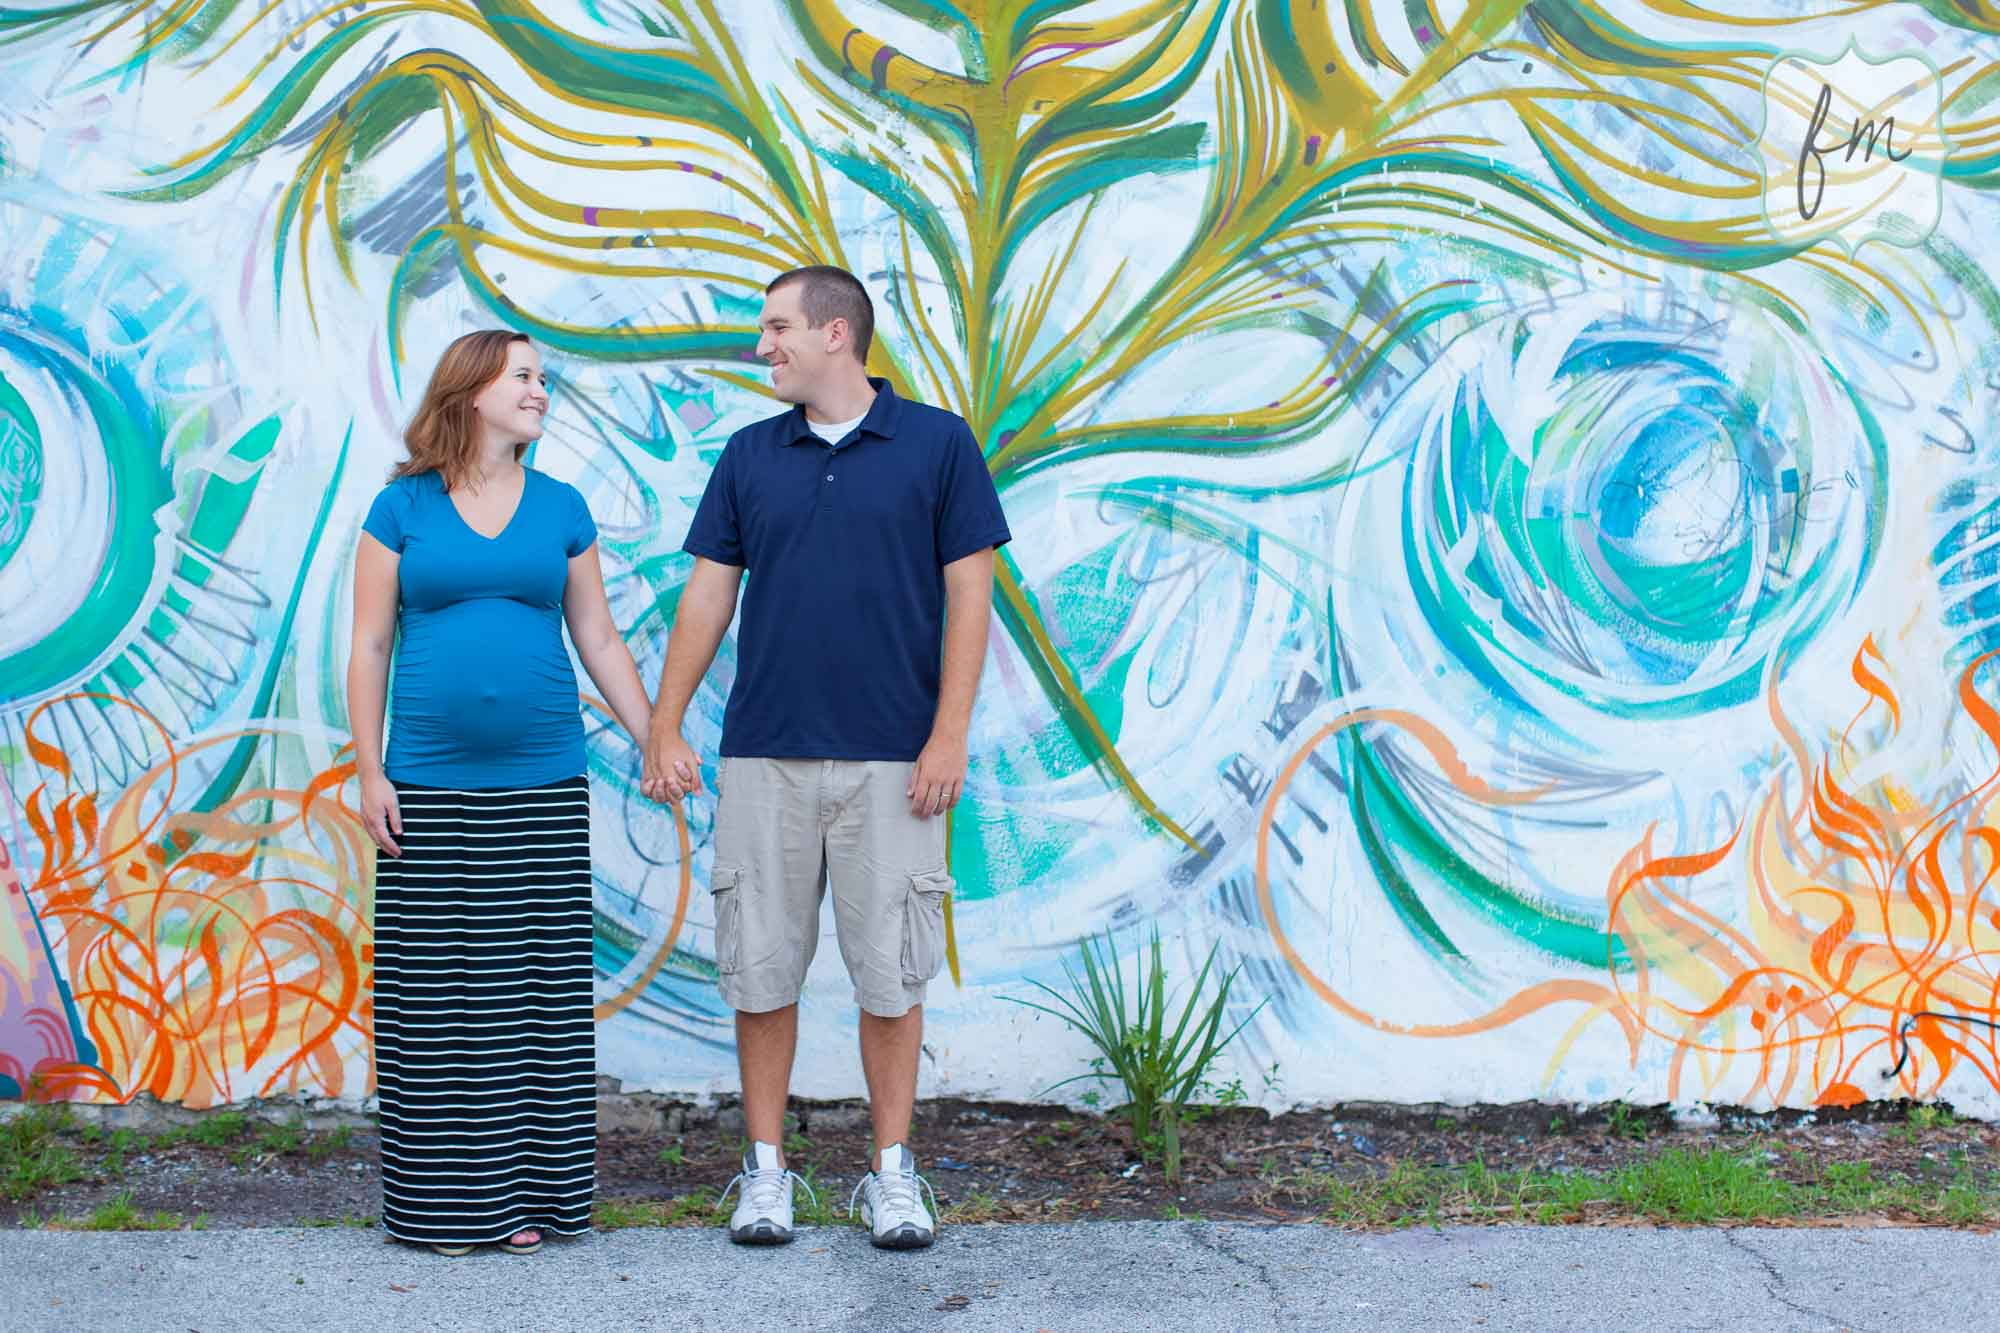 2013_09_25_Jacksonville_Maternity_Portraits_Downtown_Jacksonville_Photography04-2